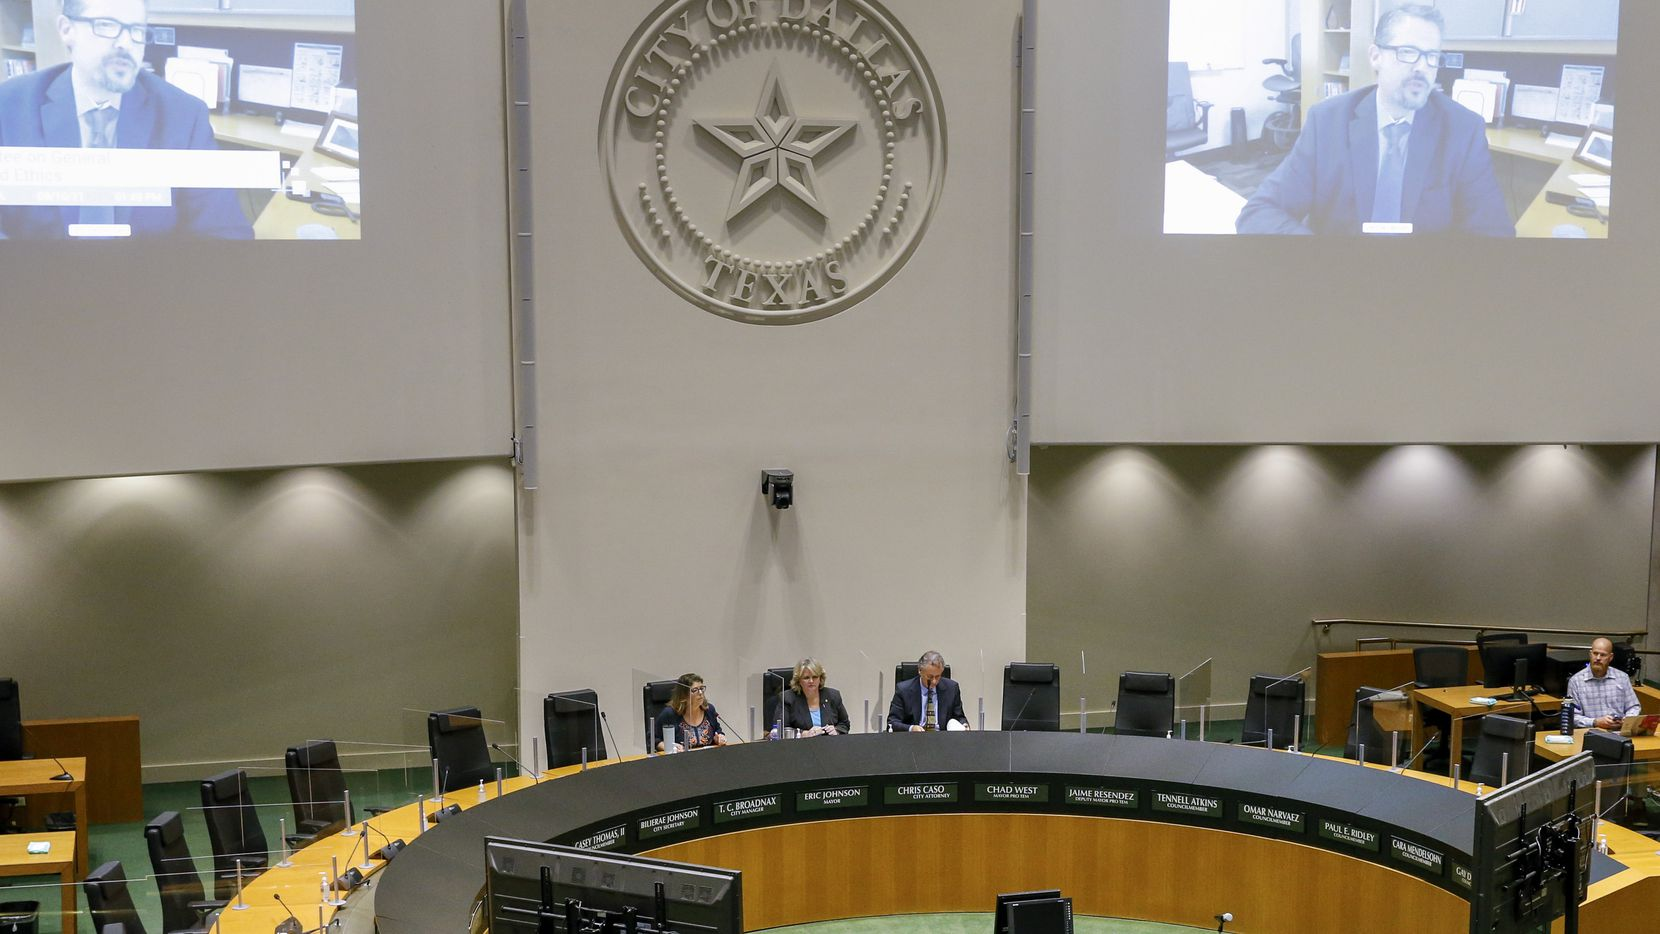 Chief information officer William Zielinski speaks virtually via video conference to members during a Dallas City Council committee meeting at Dallas City Hall on Friday, Sept. 10, 2021, in Dallas. (Elias Valverde II/The Dallas Morning News)